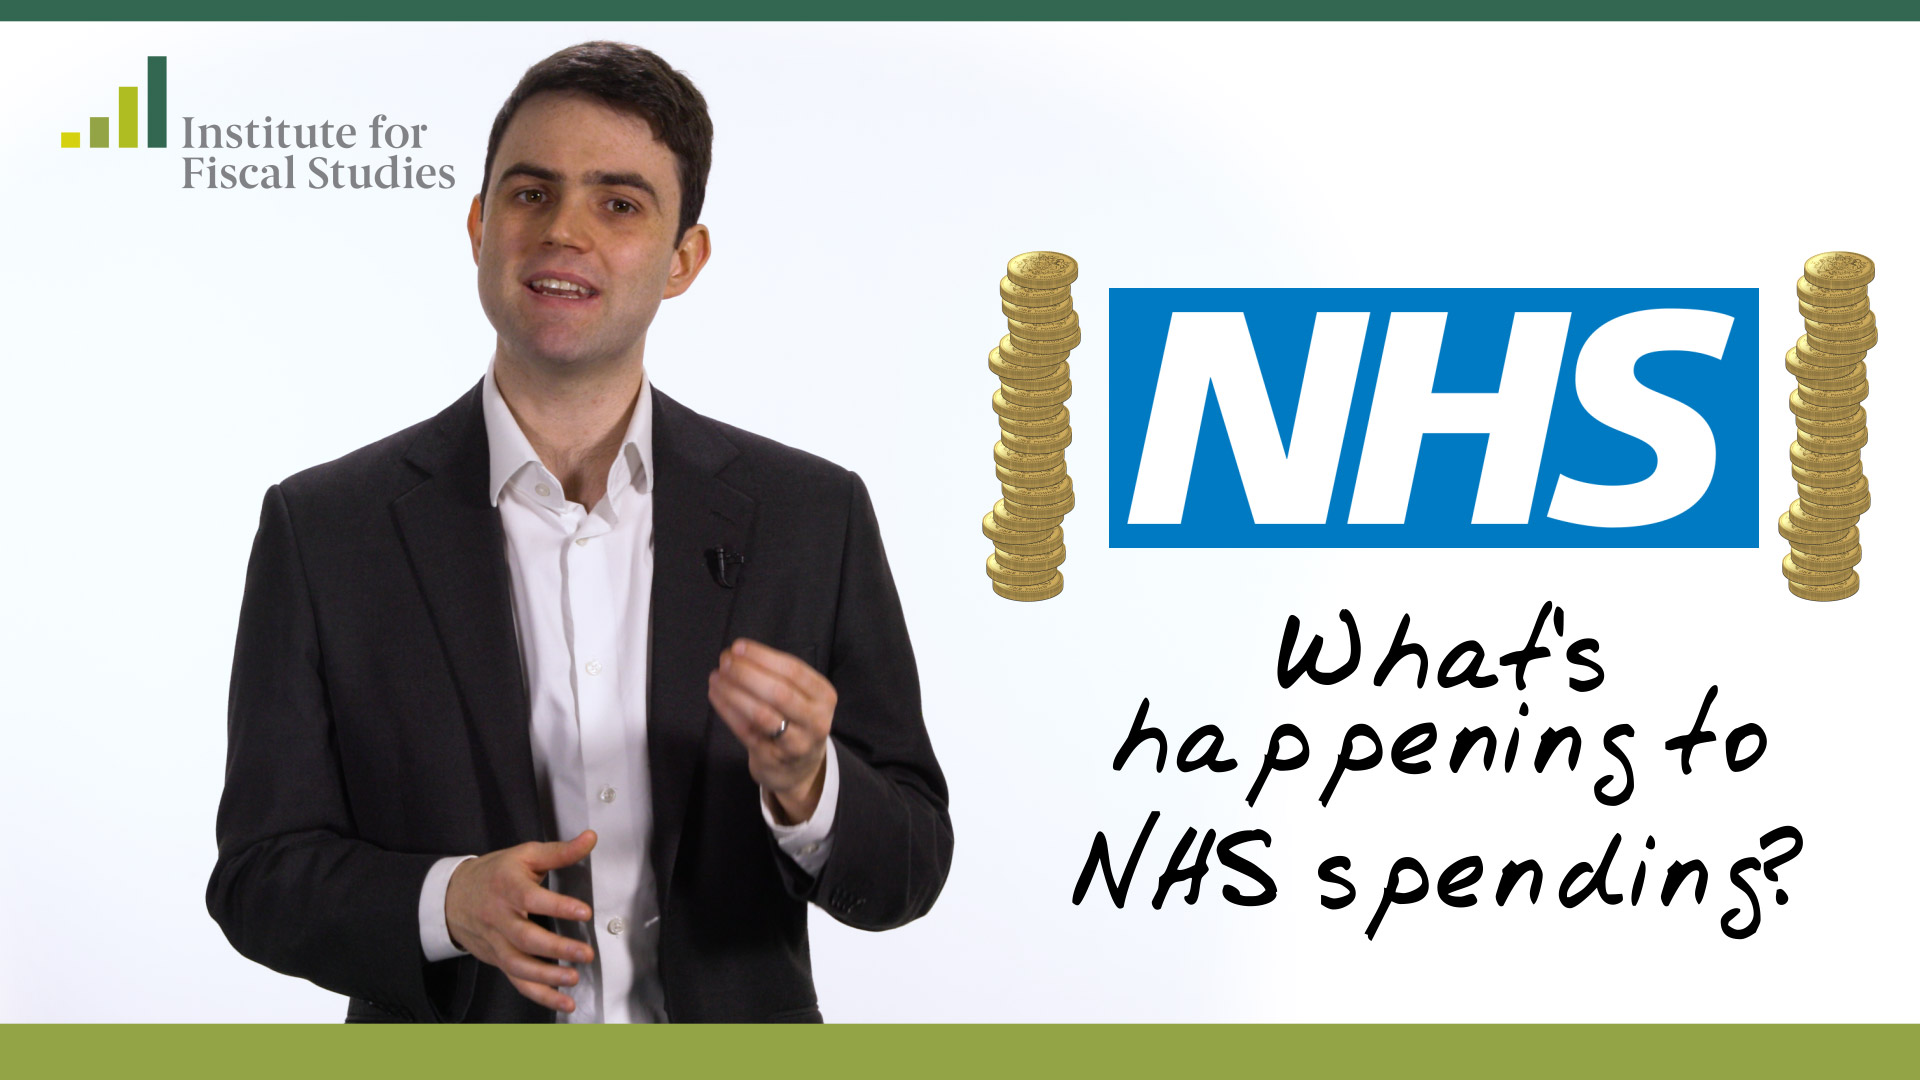 https://www.ifs.org.uk/uploads/images/election2017_images/video_thumbnails/Andy%20What%27s%20Happening%20with%20NHS%20Spending.jpg